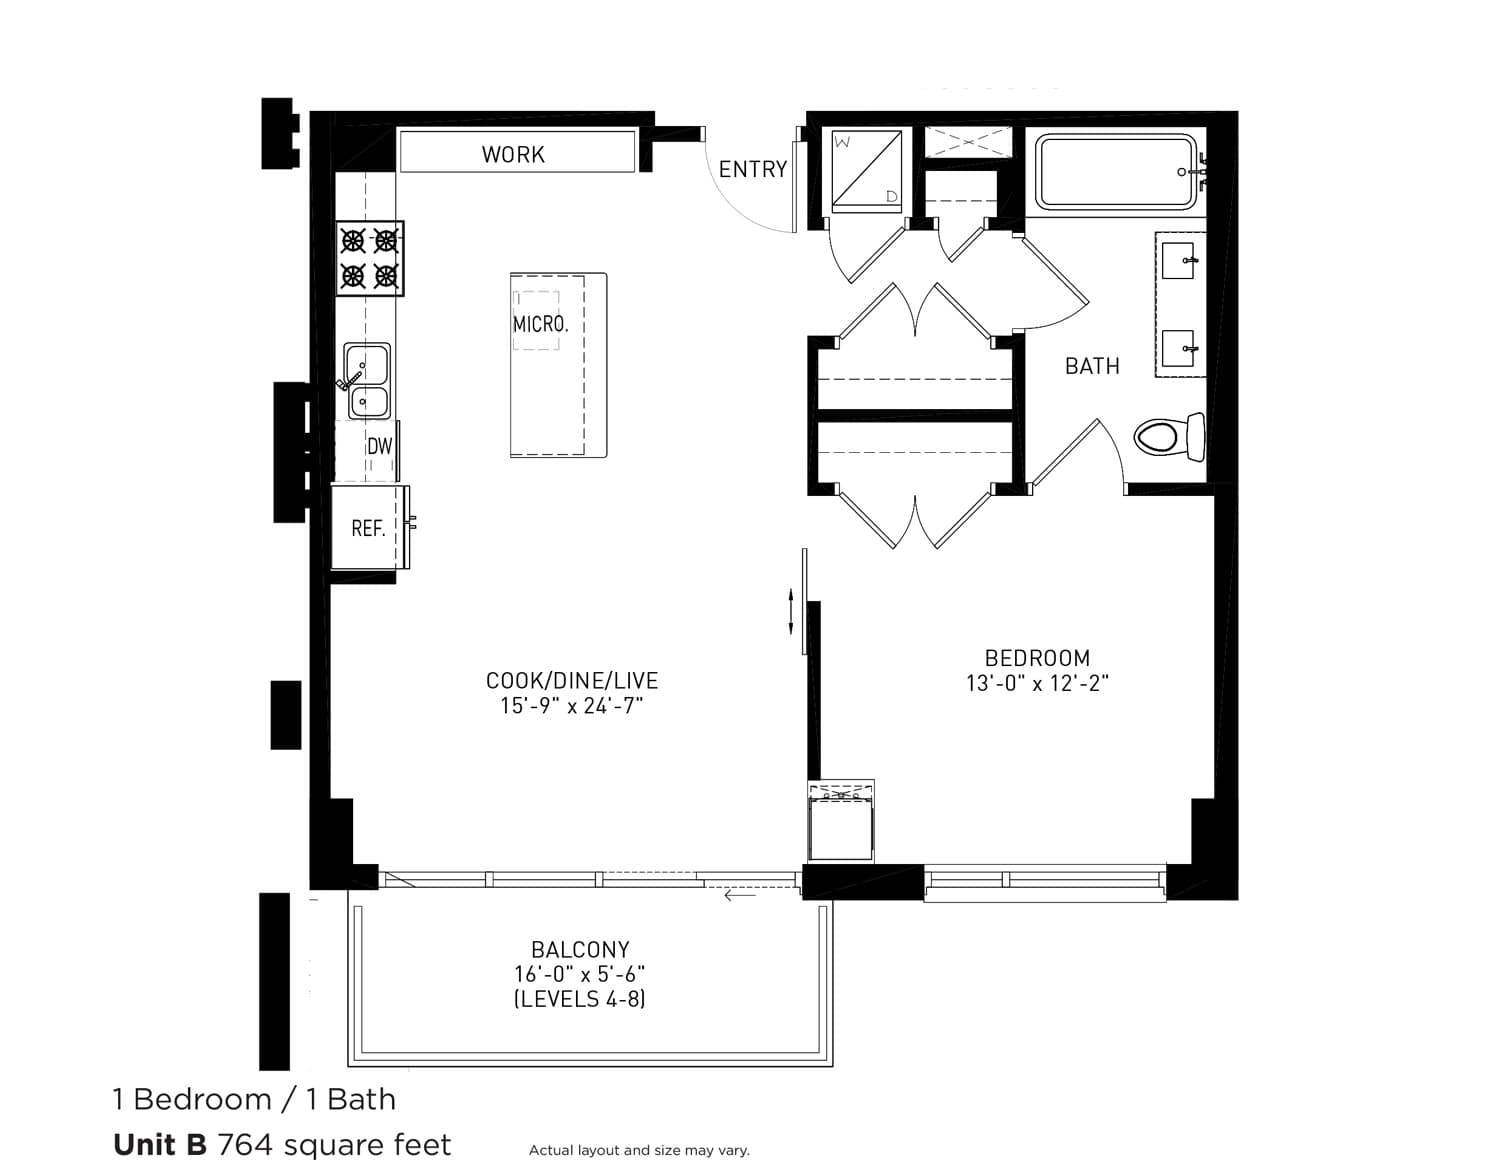 Plan 1 24 Ft X 24 Ft: Chicago Apartments For Rent